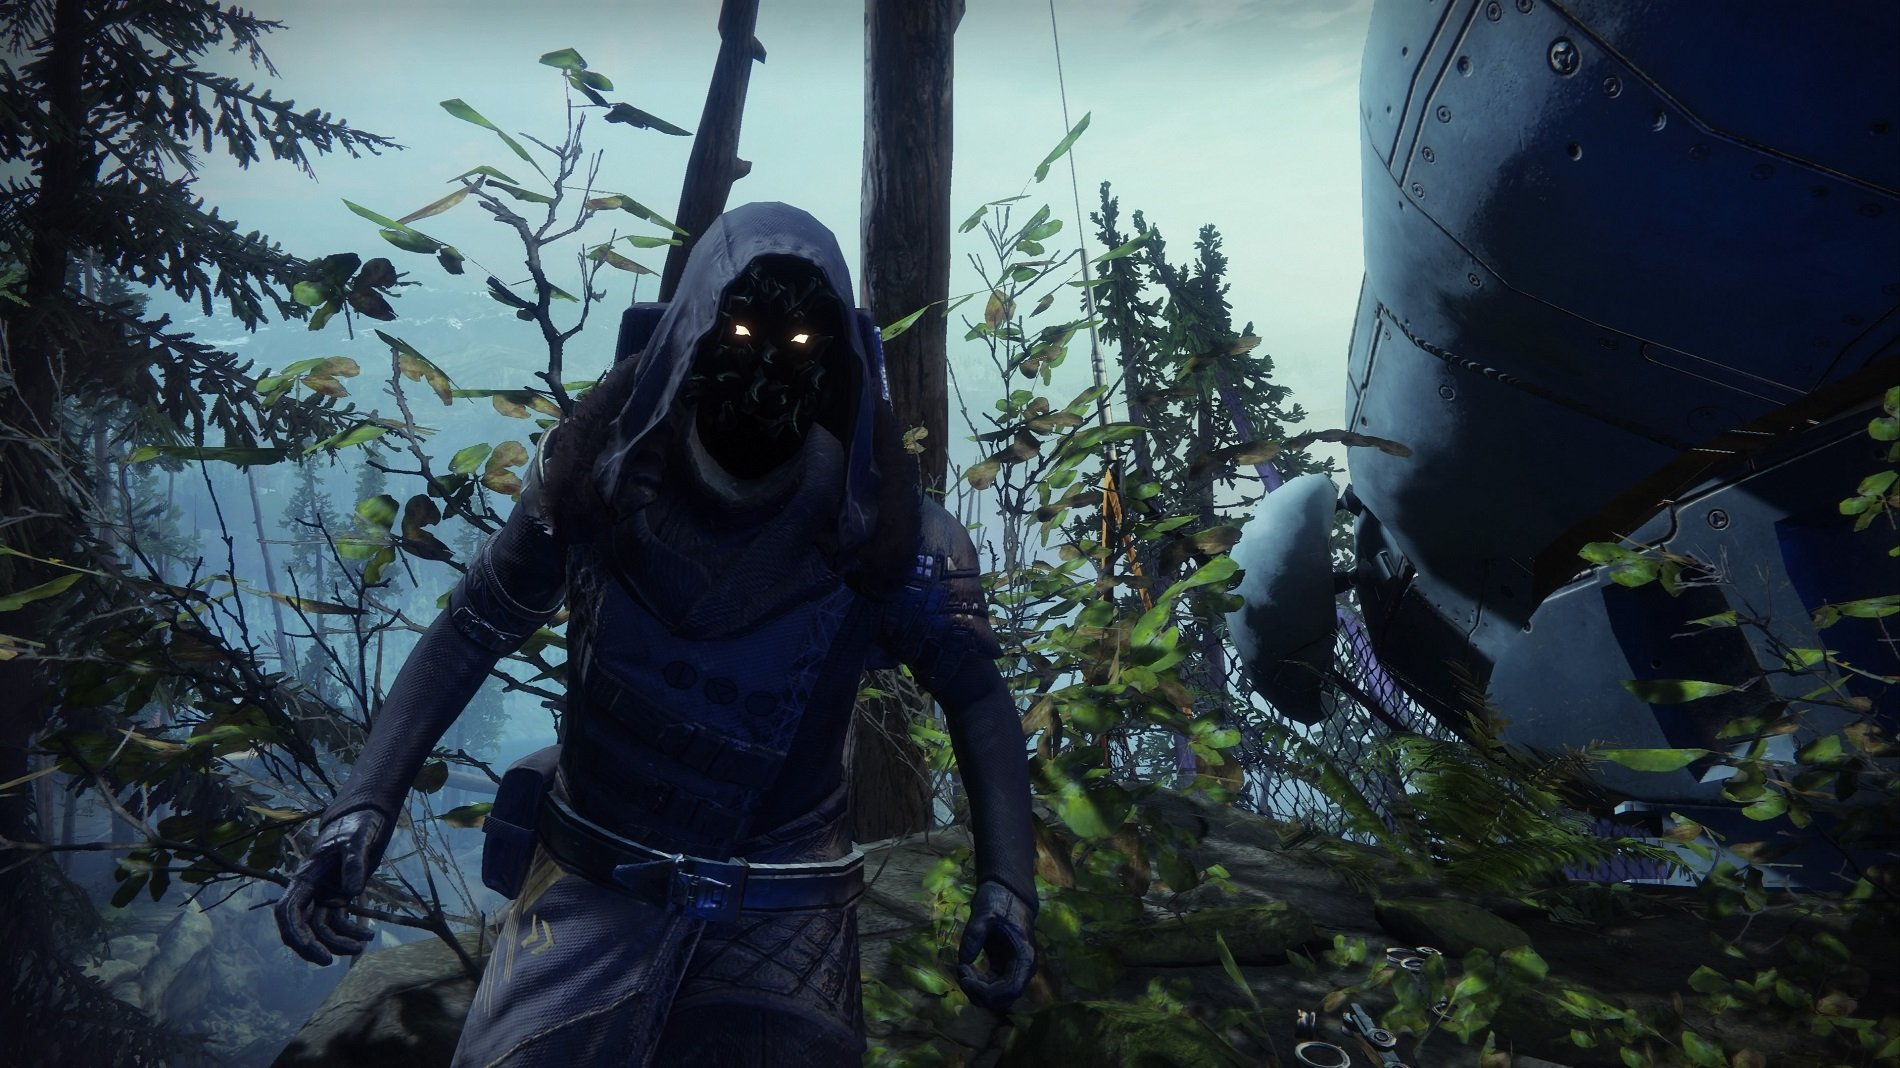 Where to find Xur in Destiny 2 - October 4, 2019